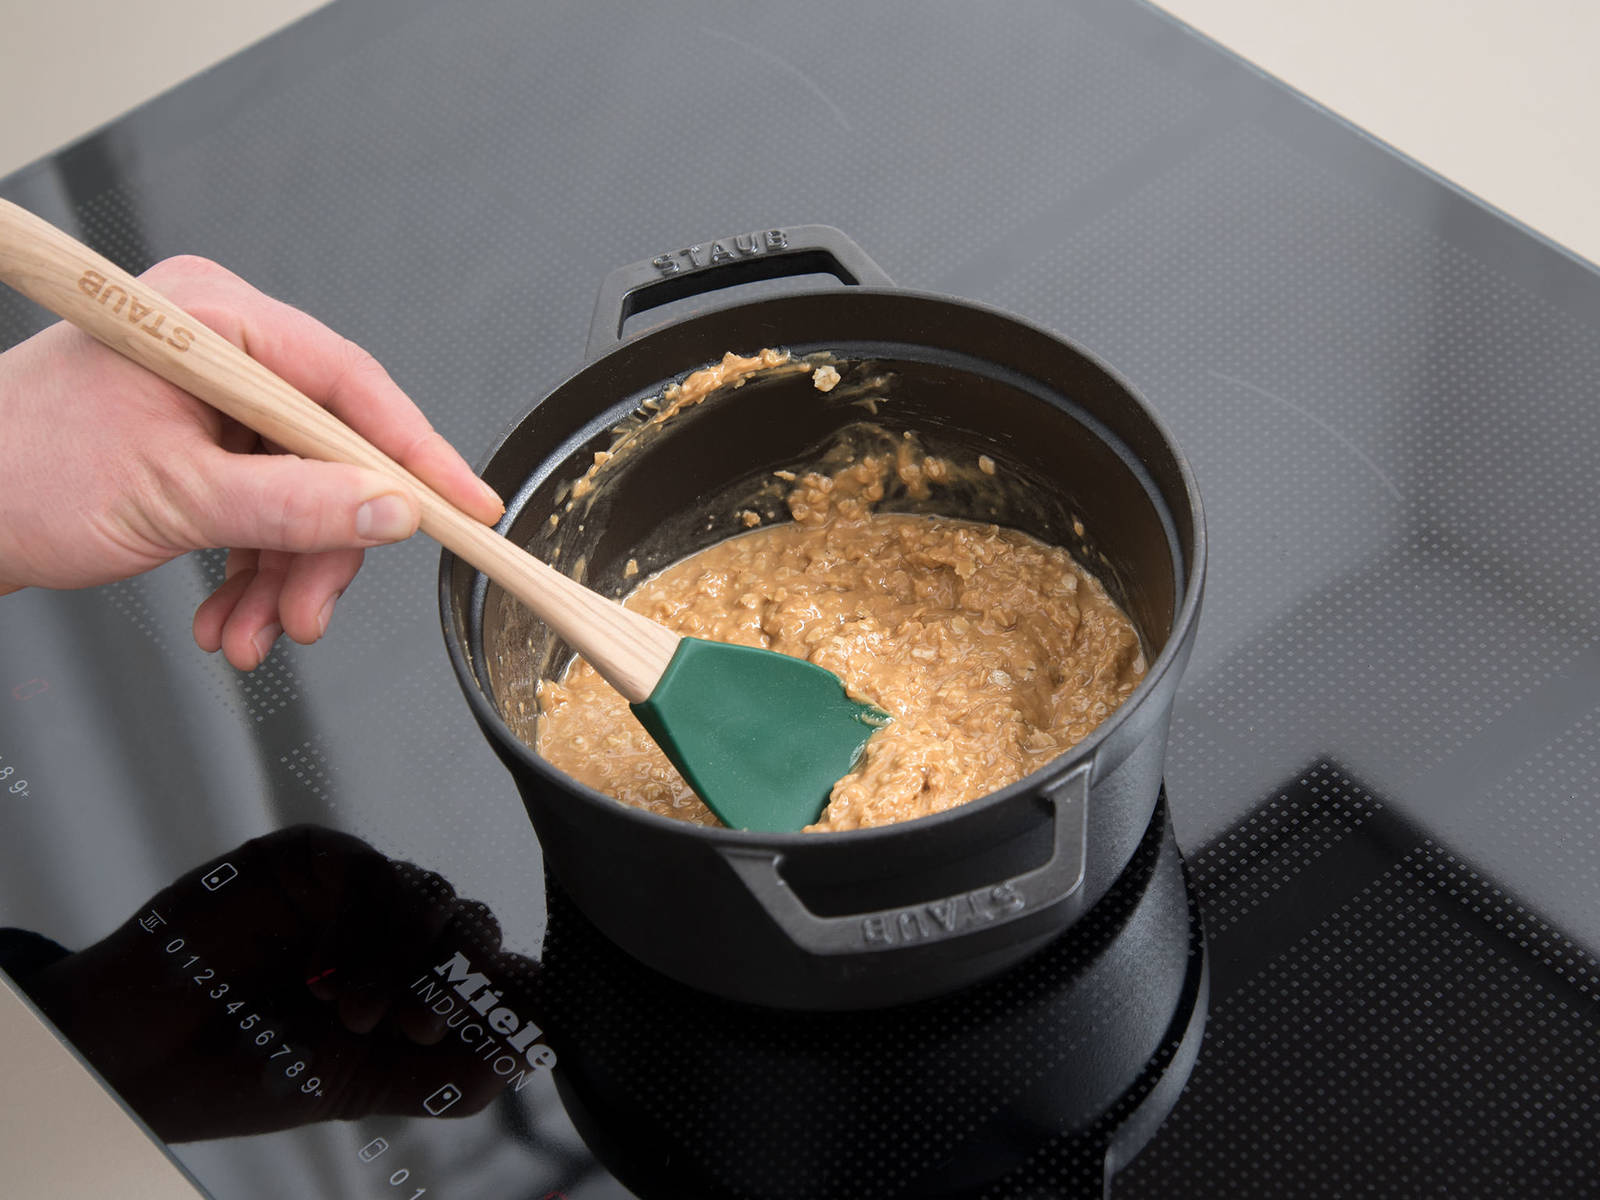 In a bowl, mix peanut butter, maple syrup and rolled oats with a rubber spatula. Melt the coconut oil in a small pot over low heat and add the peanut butter mixture to the pot. Cook for approx. 1 min.